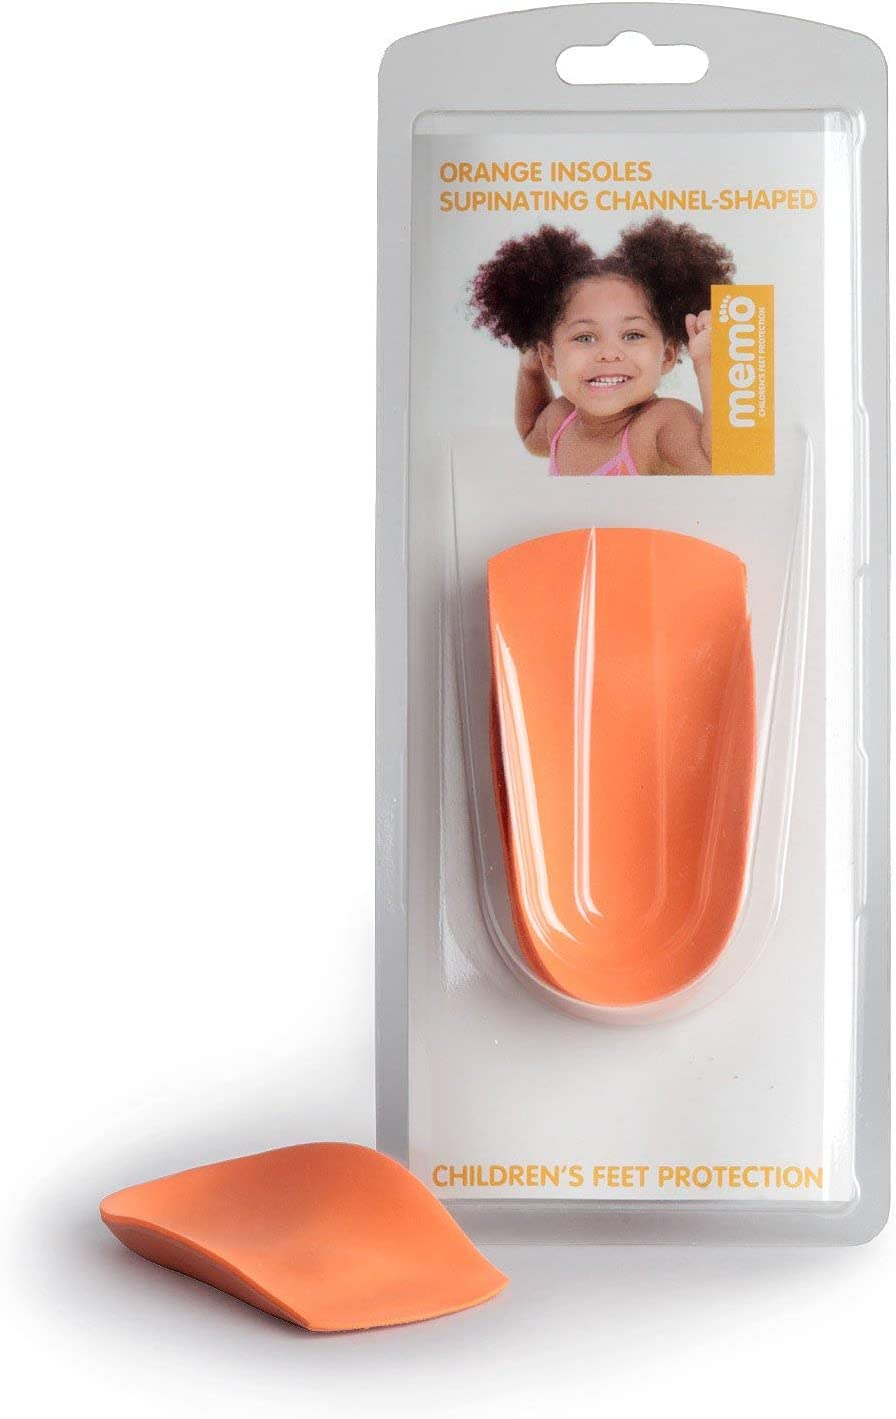 Memo 3 4 Length Orange Arch 25-27 Toddler Insoles Deluxe Support Cheap super special price 9